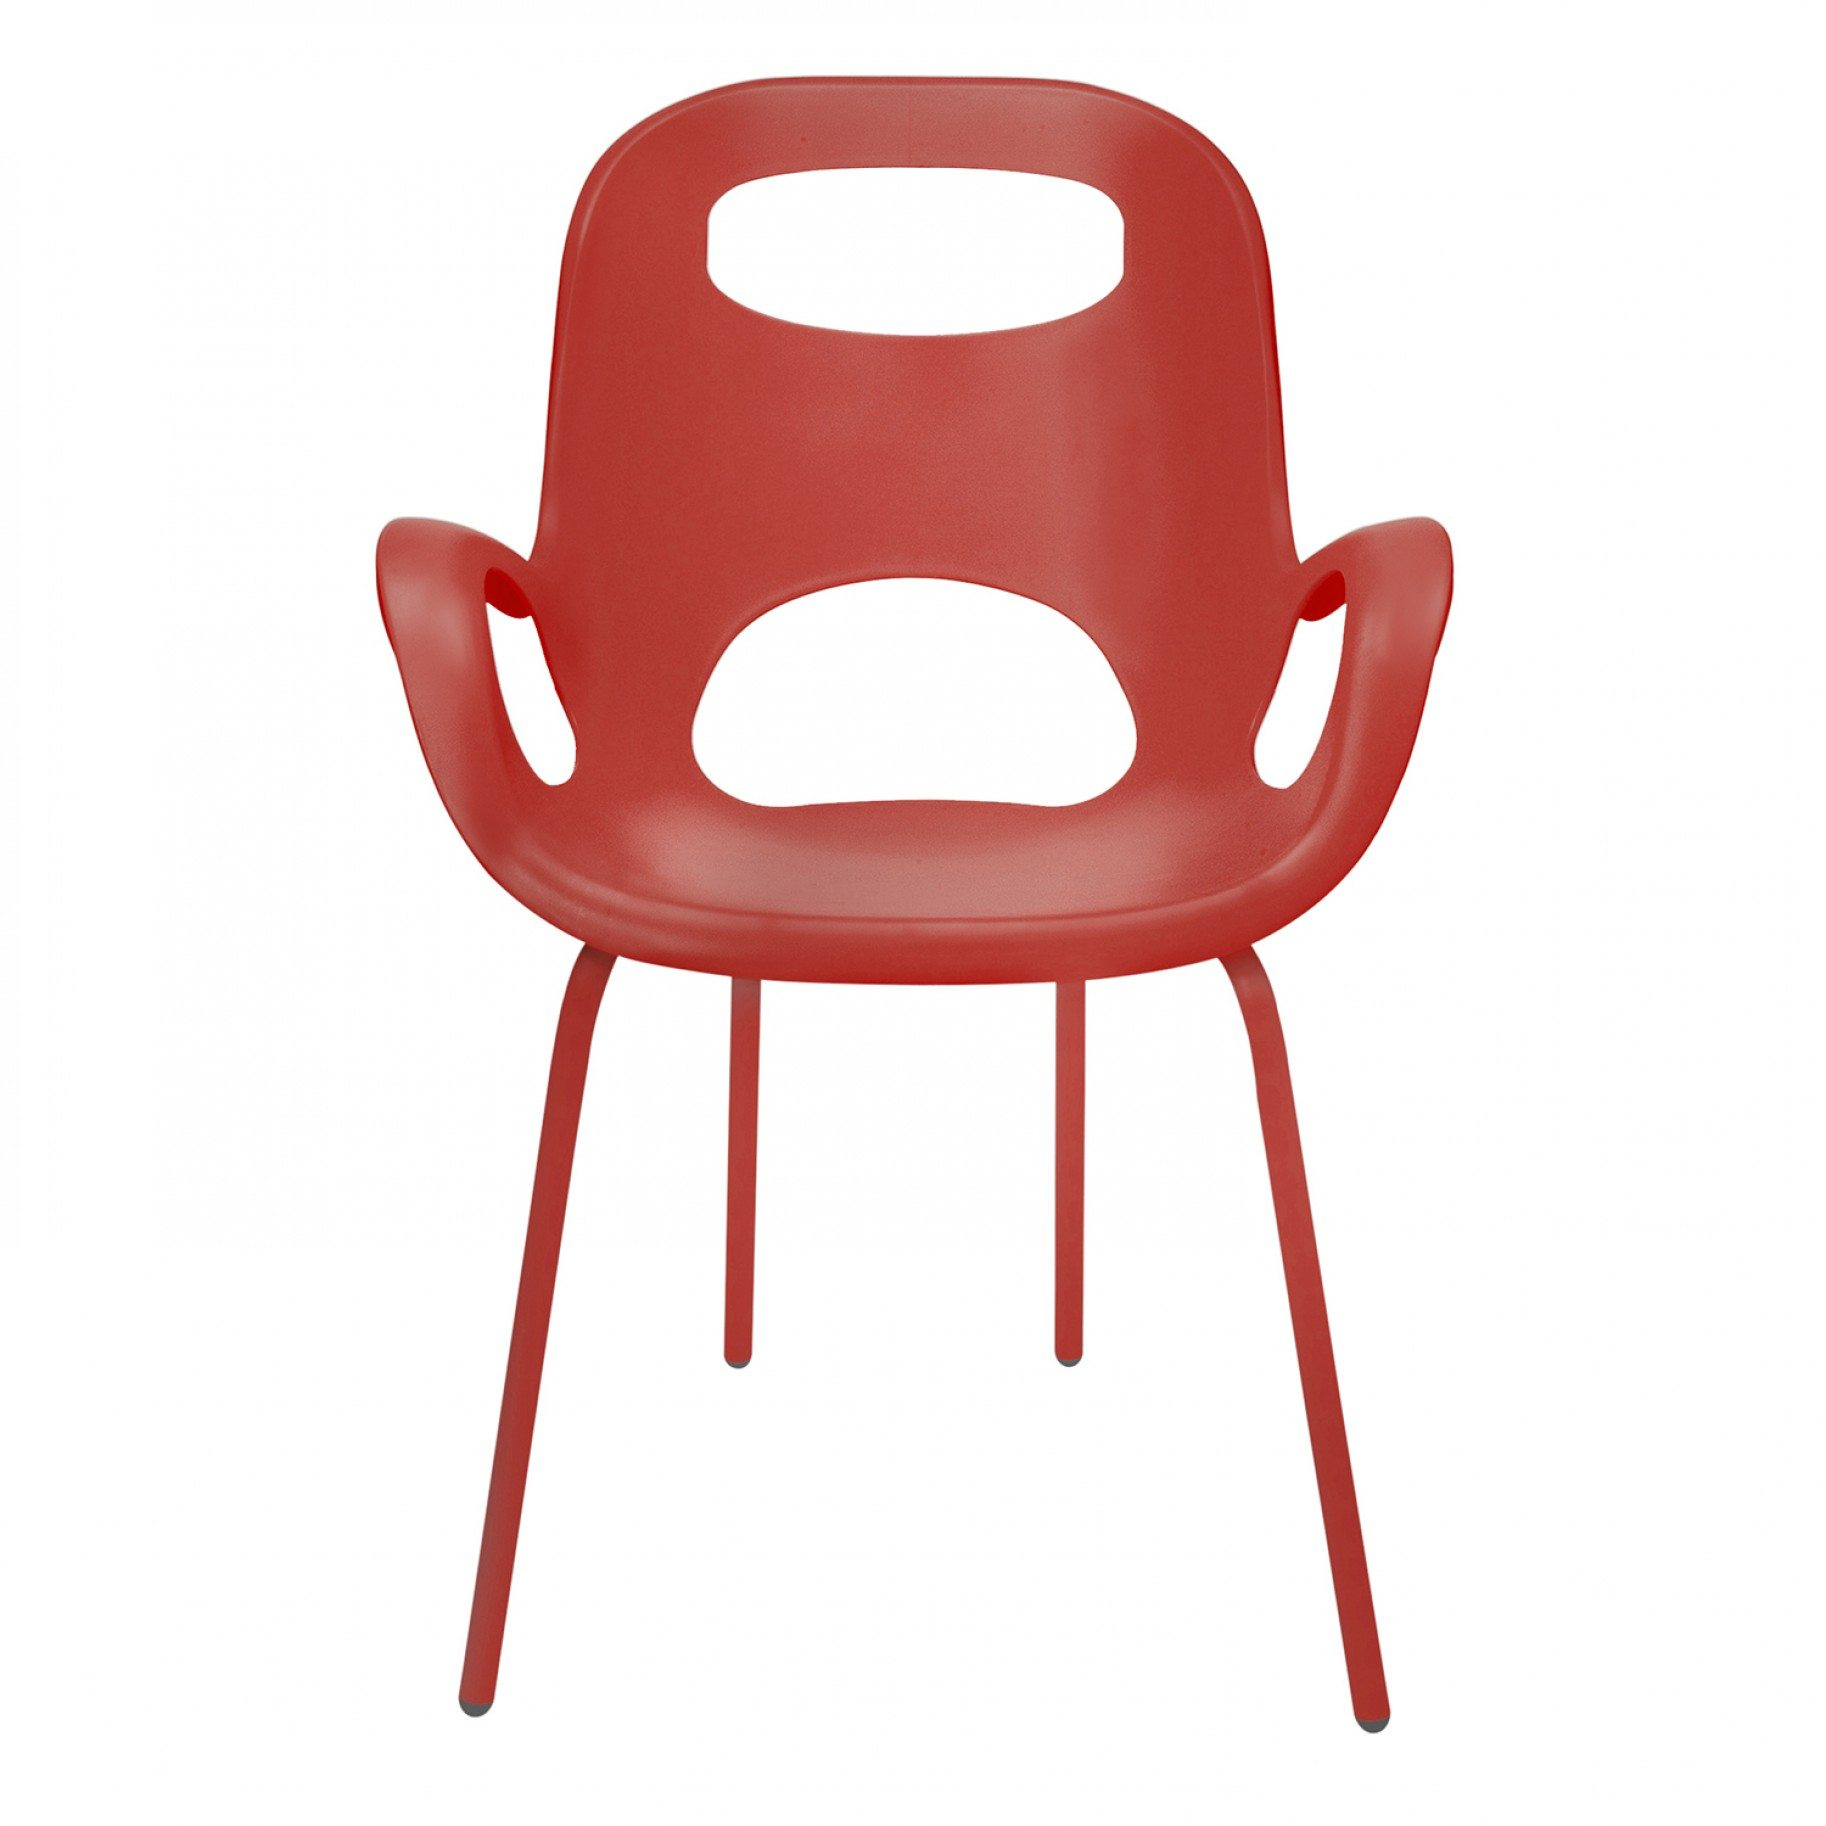 320150-505-oh-red